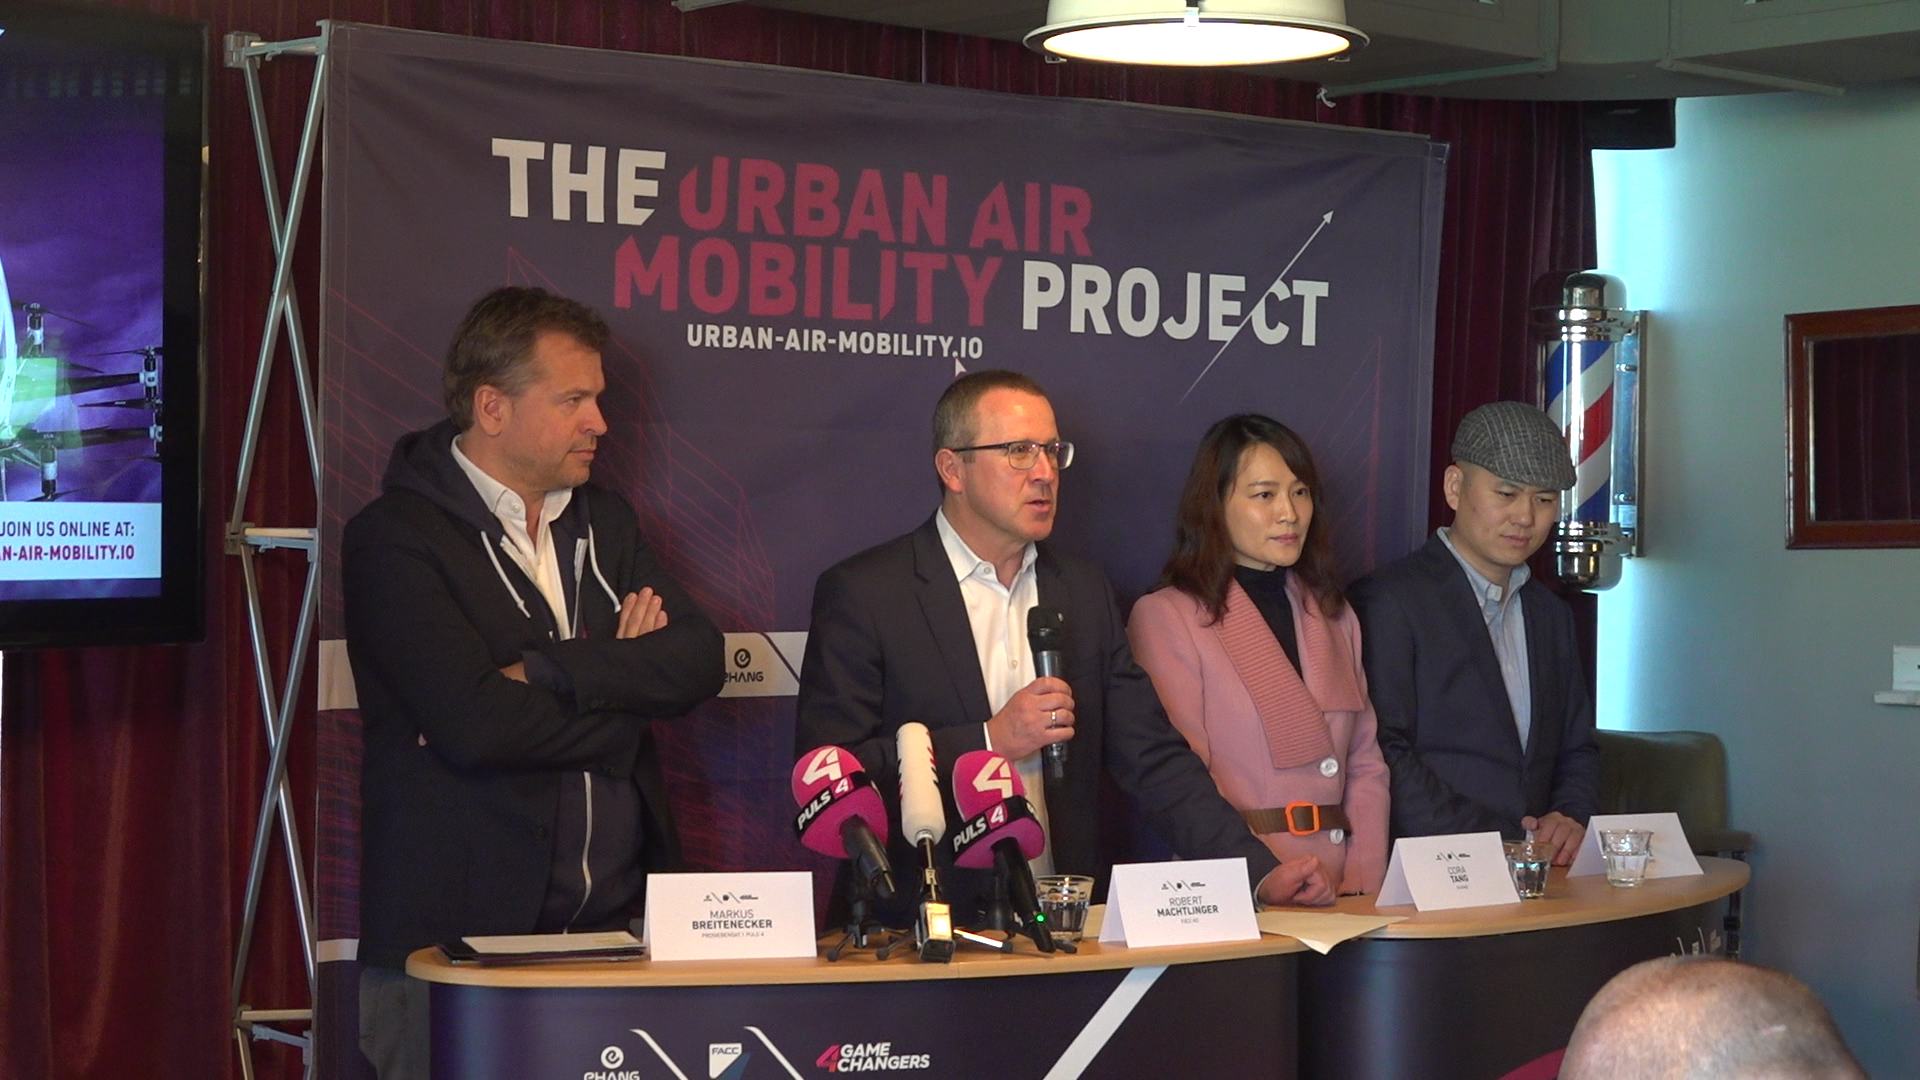 PK The Urban Air Mobility Project - Lufttaxi-Kooperation FACC, EHang, Puls4